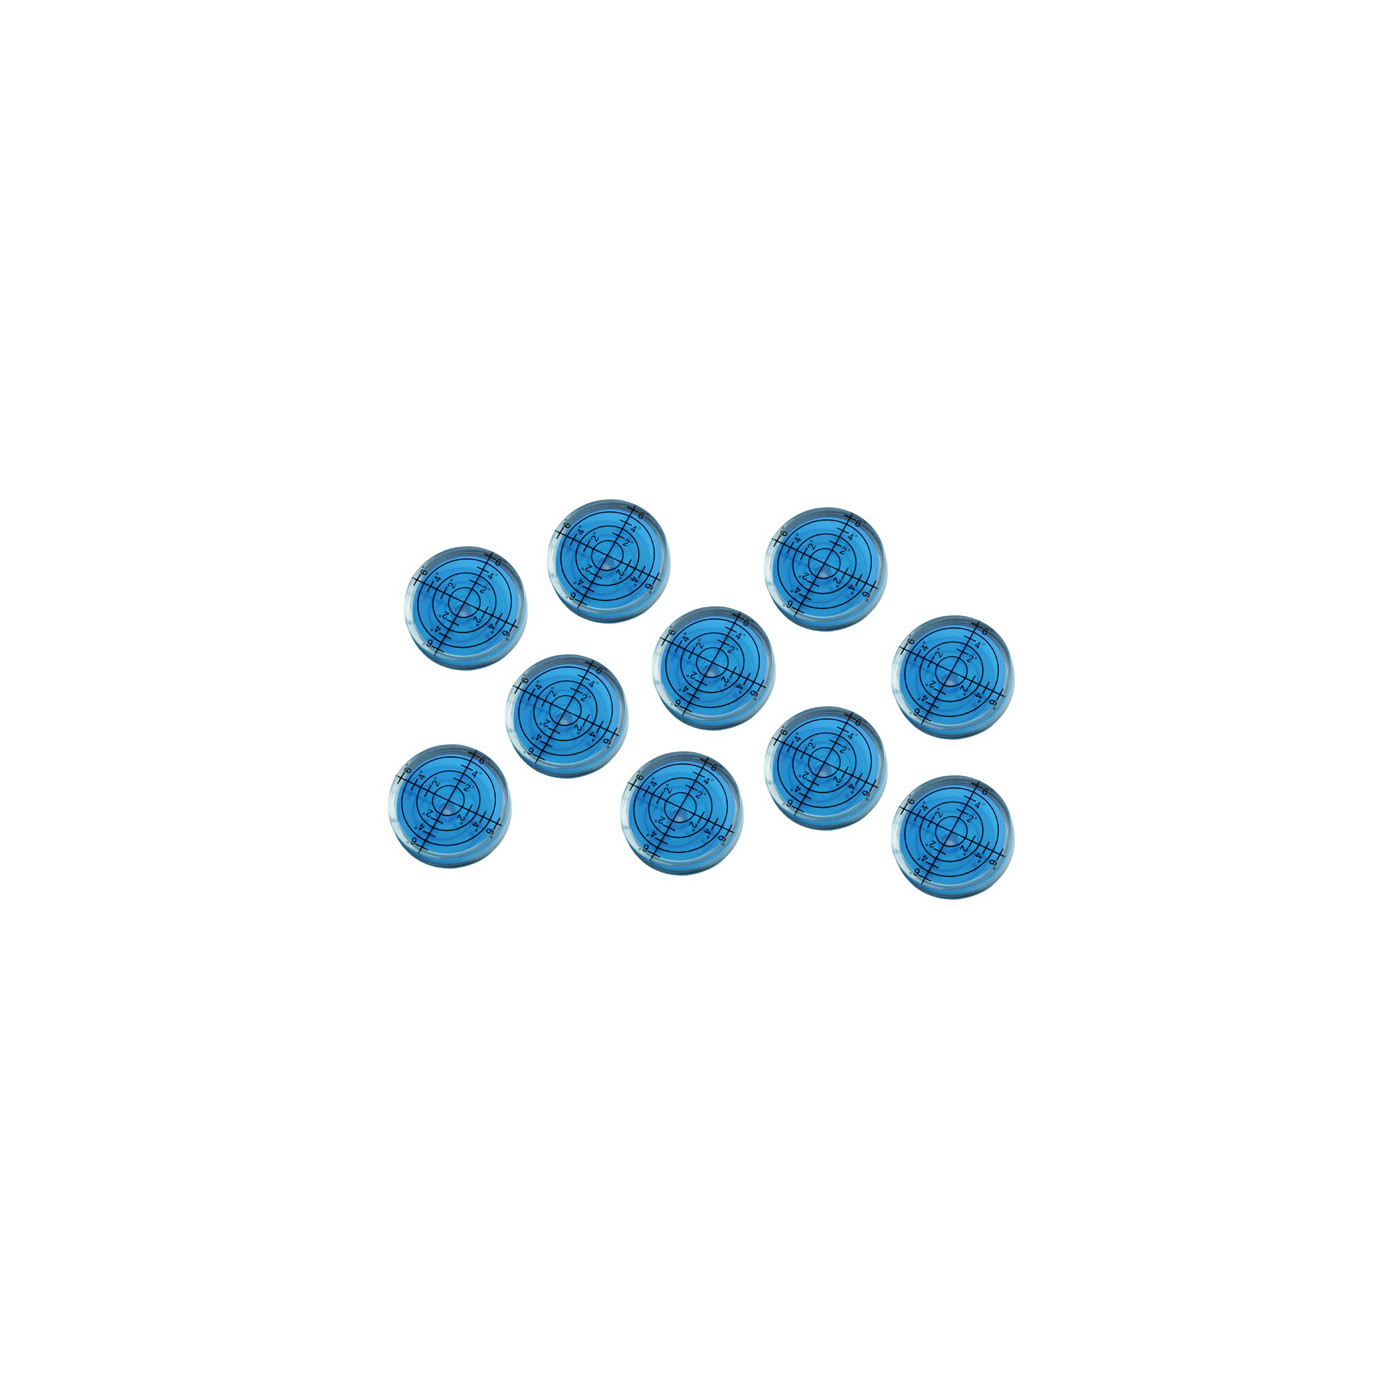 Set van 10 ronde waterpasjes (32x7 mm, blauw)  - 1